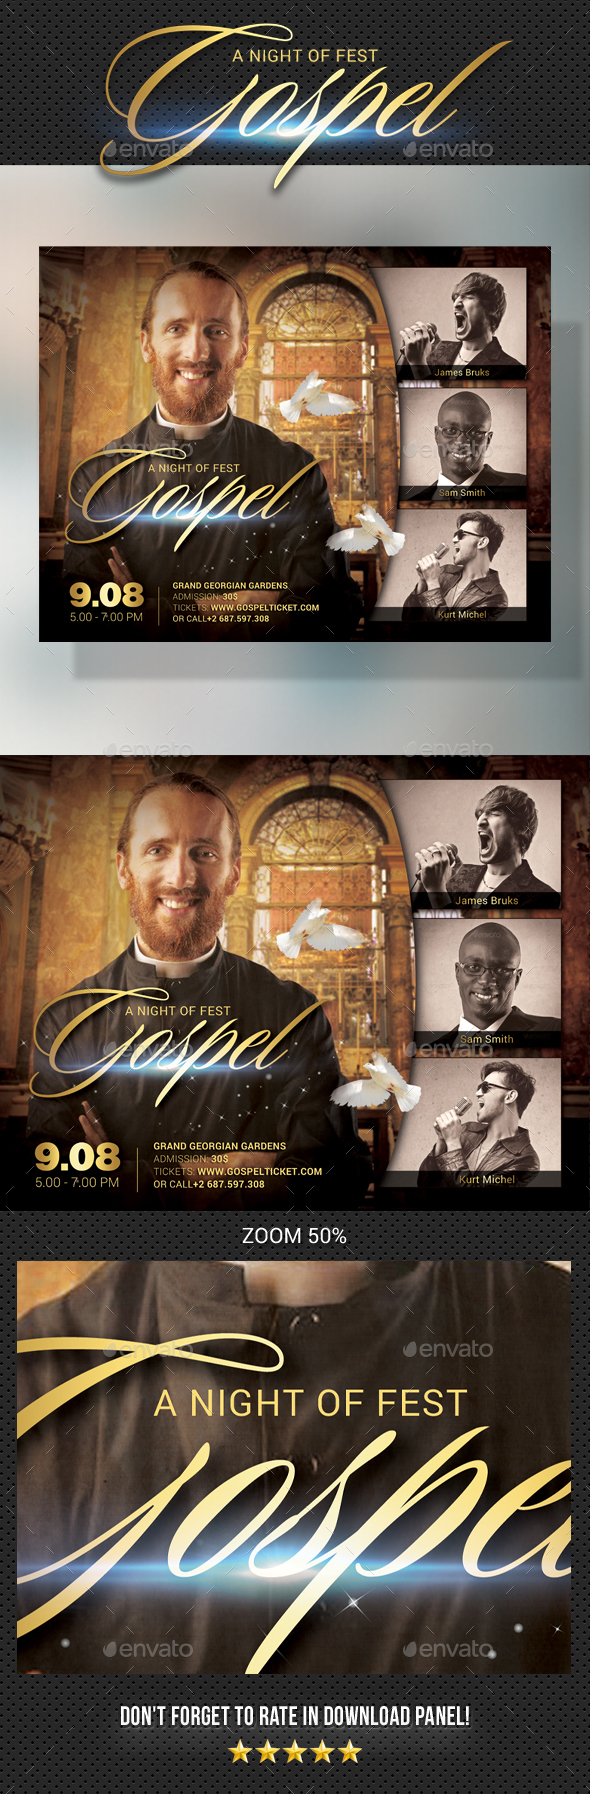 Gospel Flyer V2 - Church Flyers